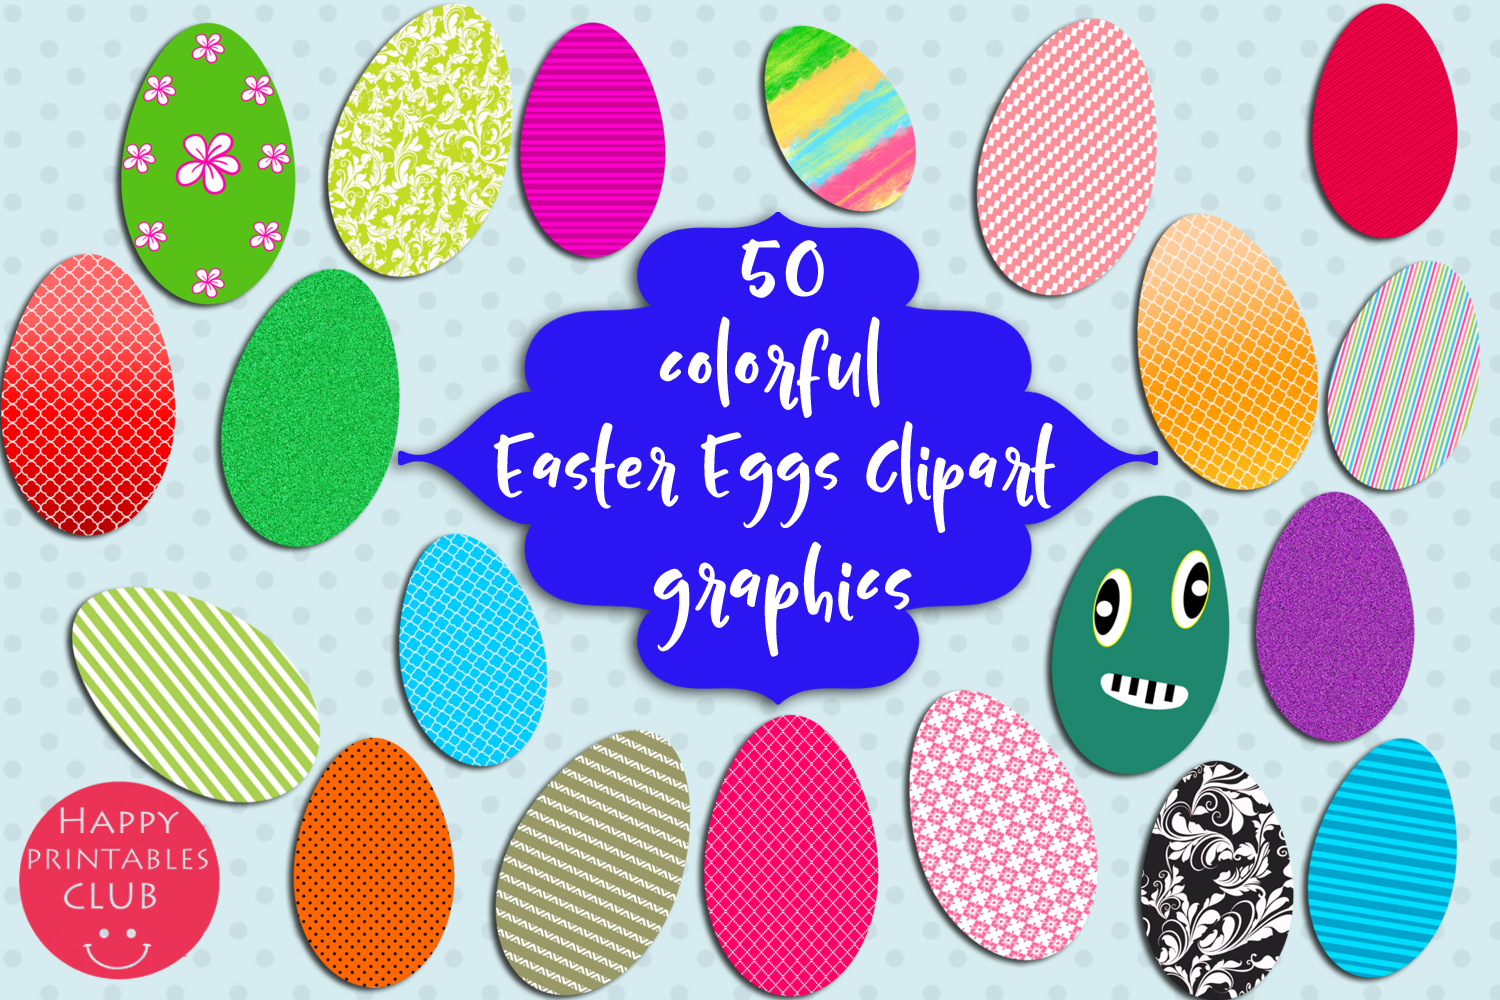 50 Colorful Easter Eggs Clipart.